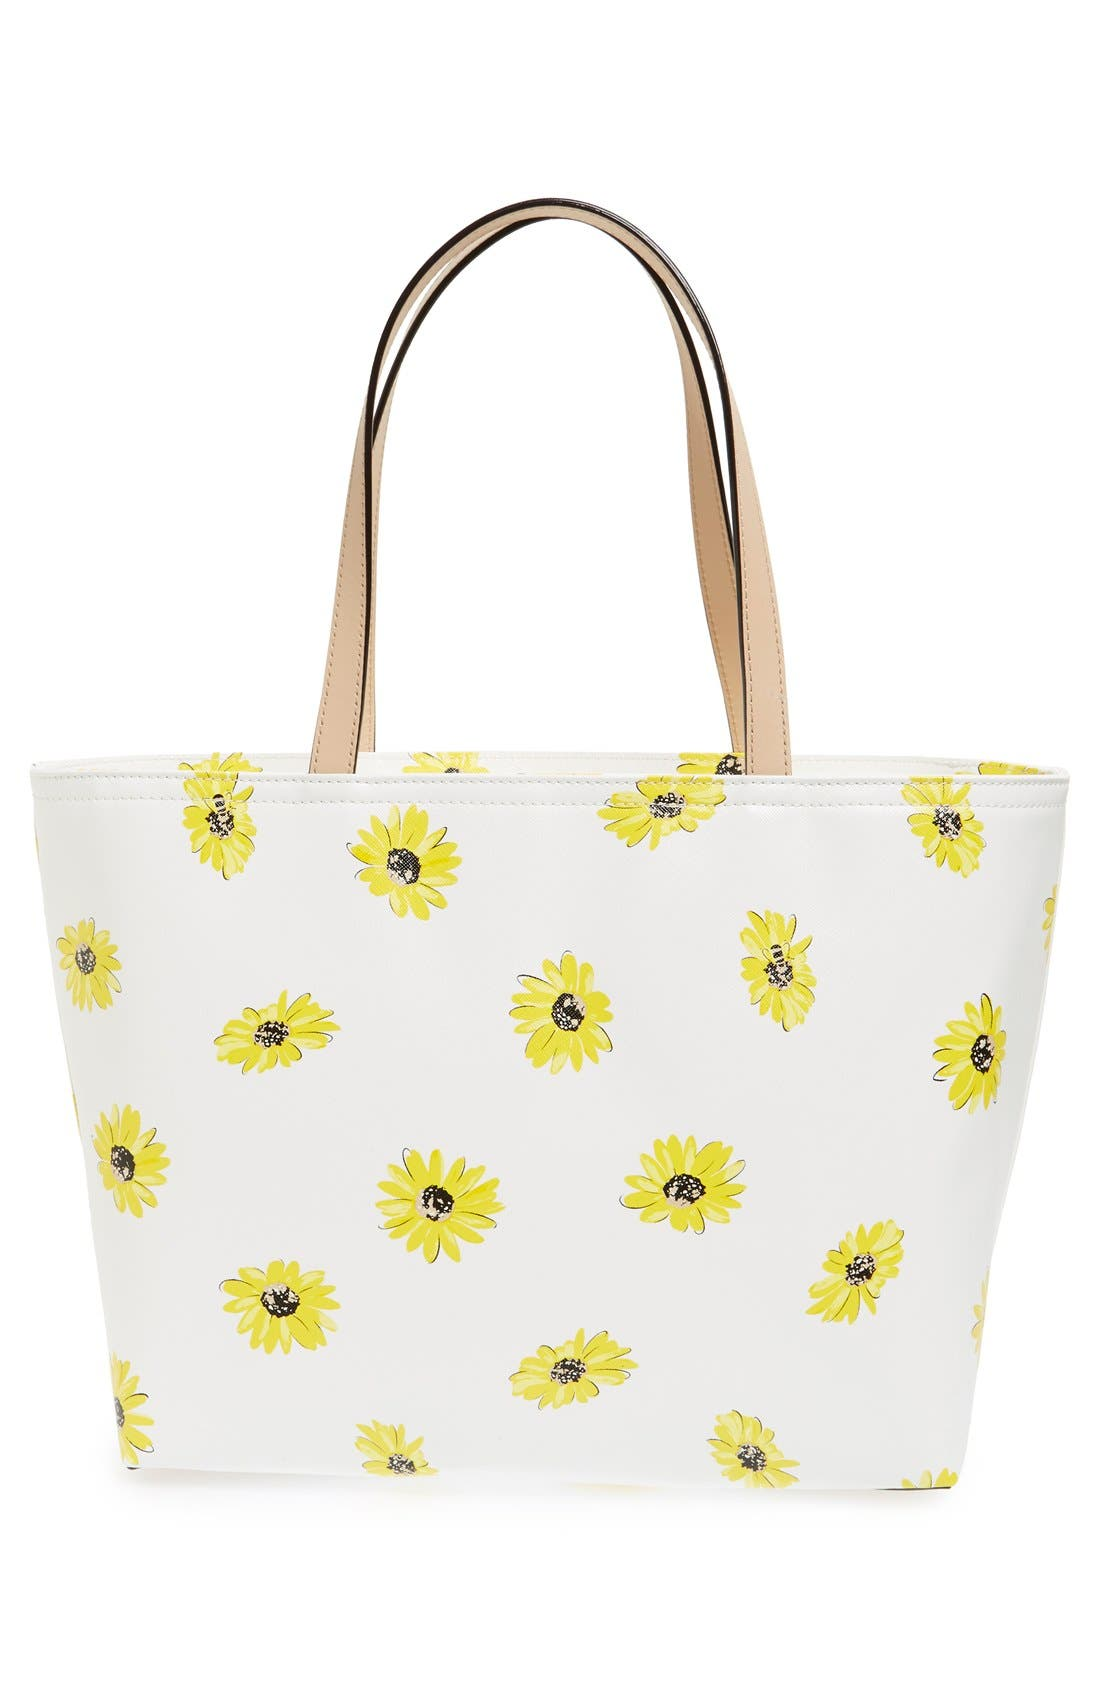 'oops-a-daisy - francis' tote,                             Alternate thumbnail 4, color,                             250